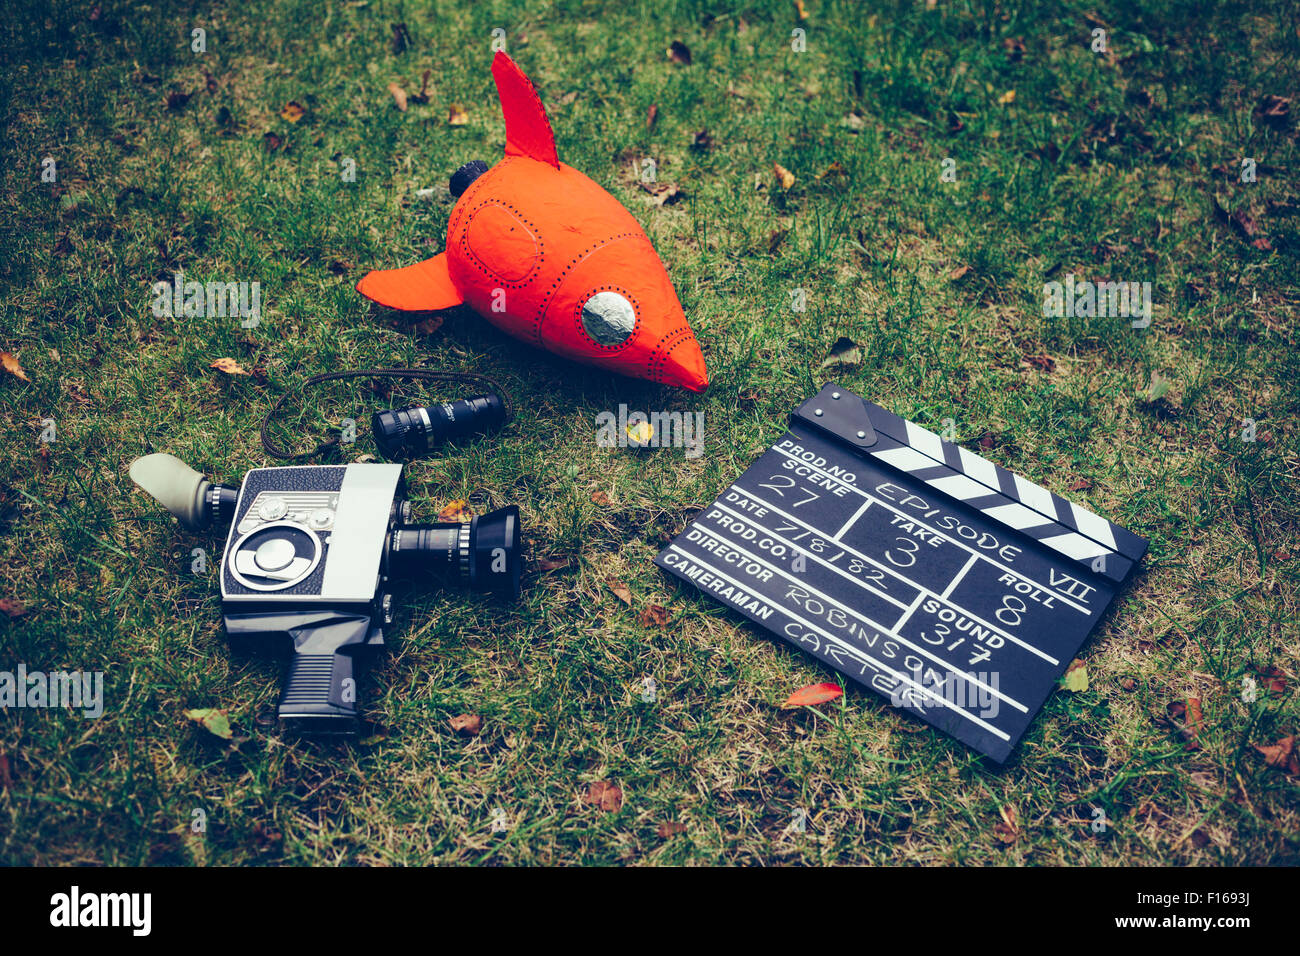 Retro Film Making -  Cine Camera, Clapper Board and Rocket - Stock Image